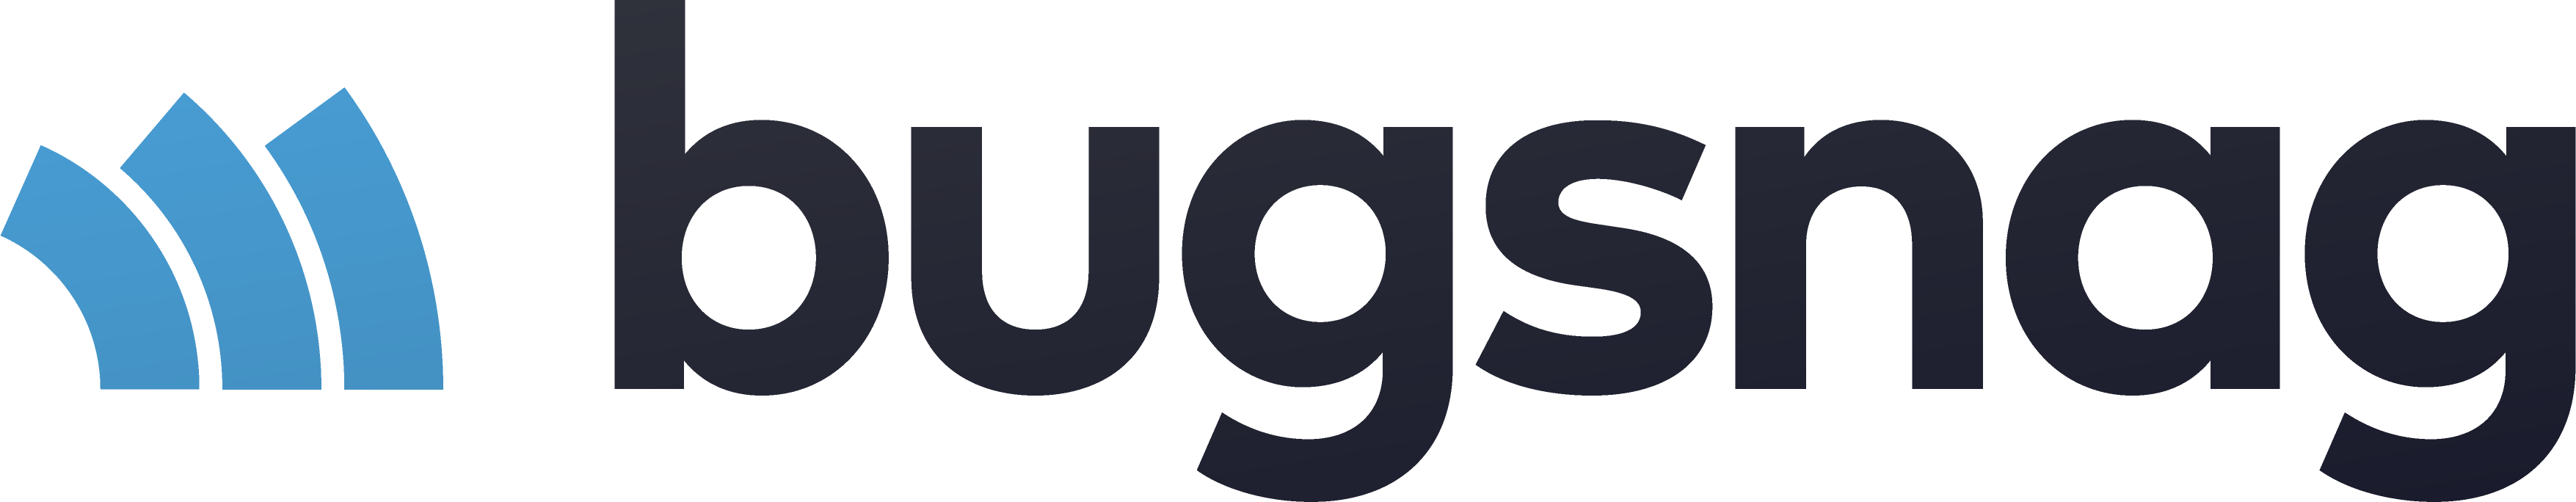 Bugsnag Uses HashiCorp Terraform to Quickly Provision and Safely Maintain Their Infrastructure